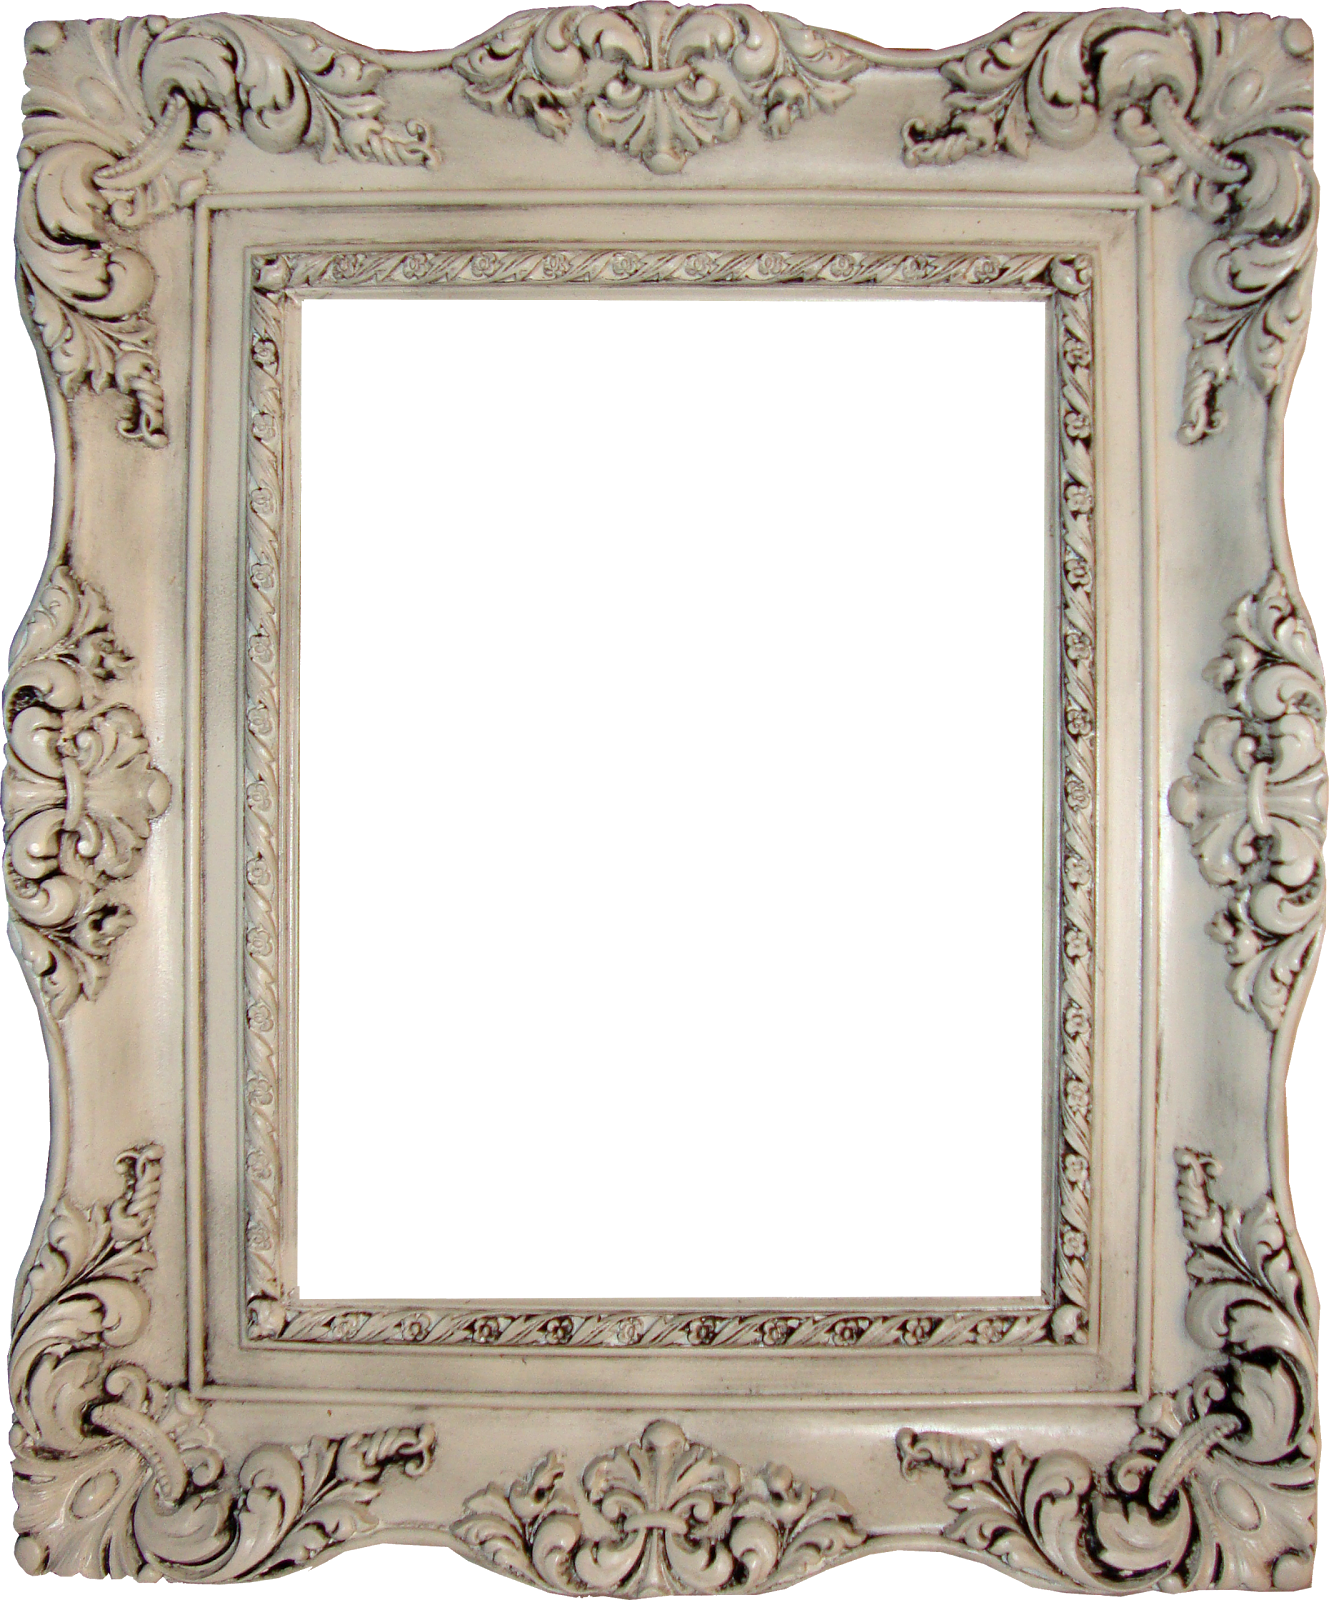 Download Free High quality Vintage Frame Png Transparent Images